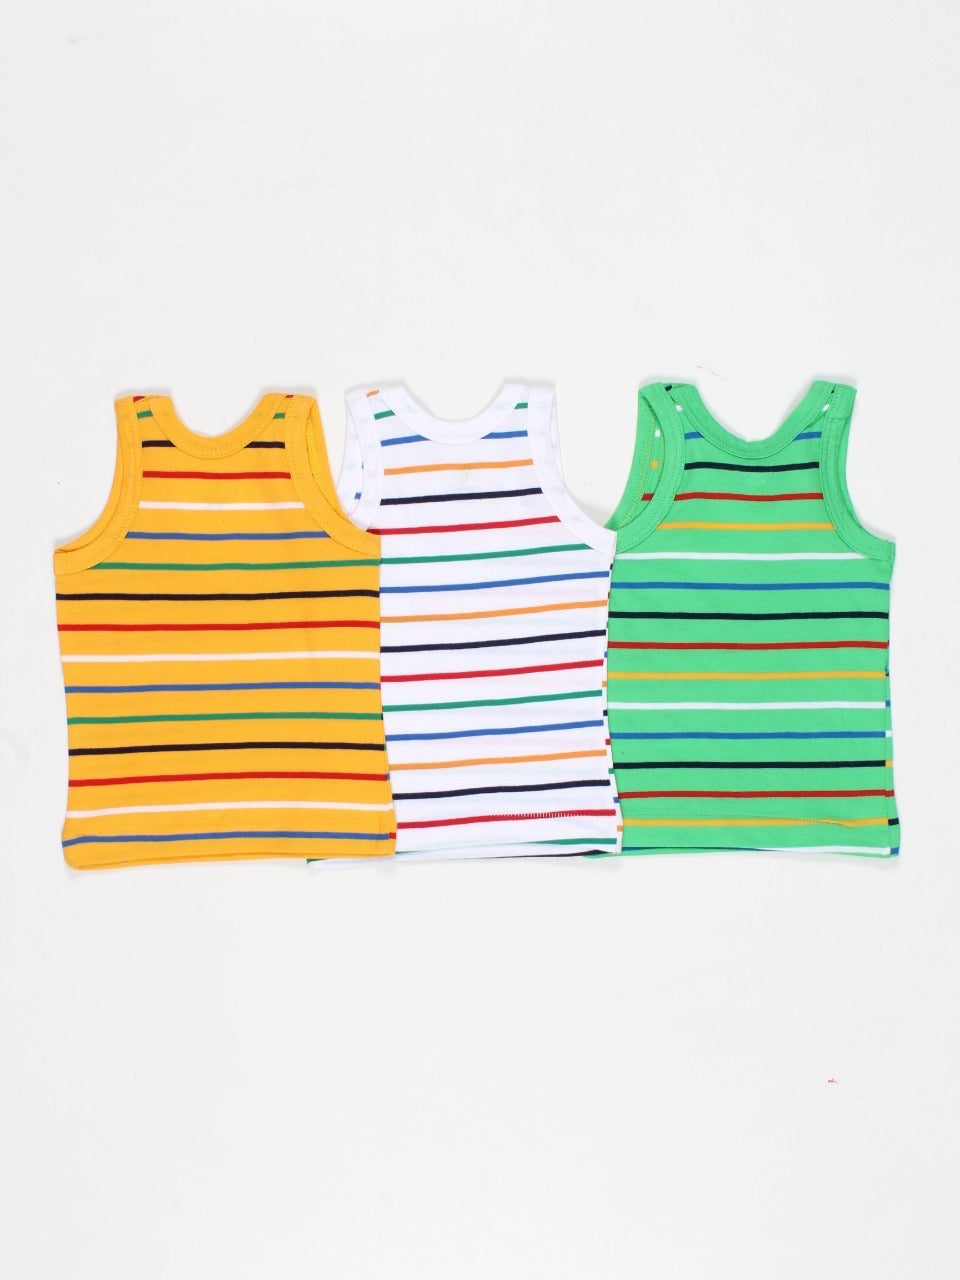 Sleeveless Tshirt (Pack of 3)